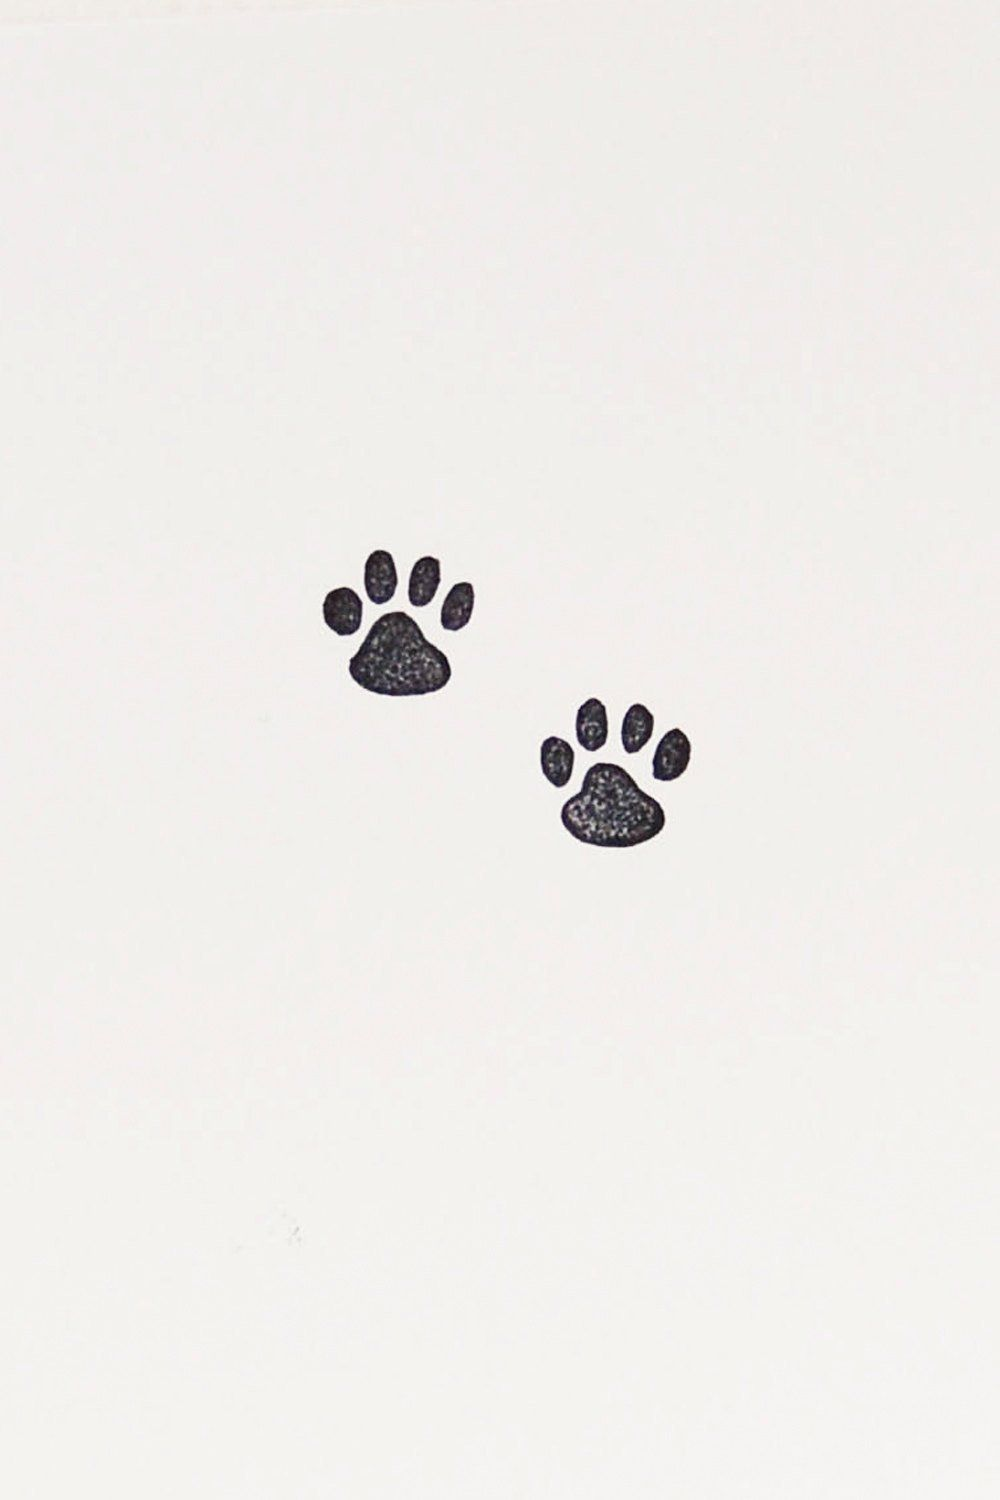 19 Best Cat paw drawing ideas | cat paw drawing, paw